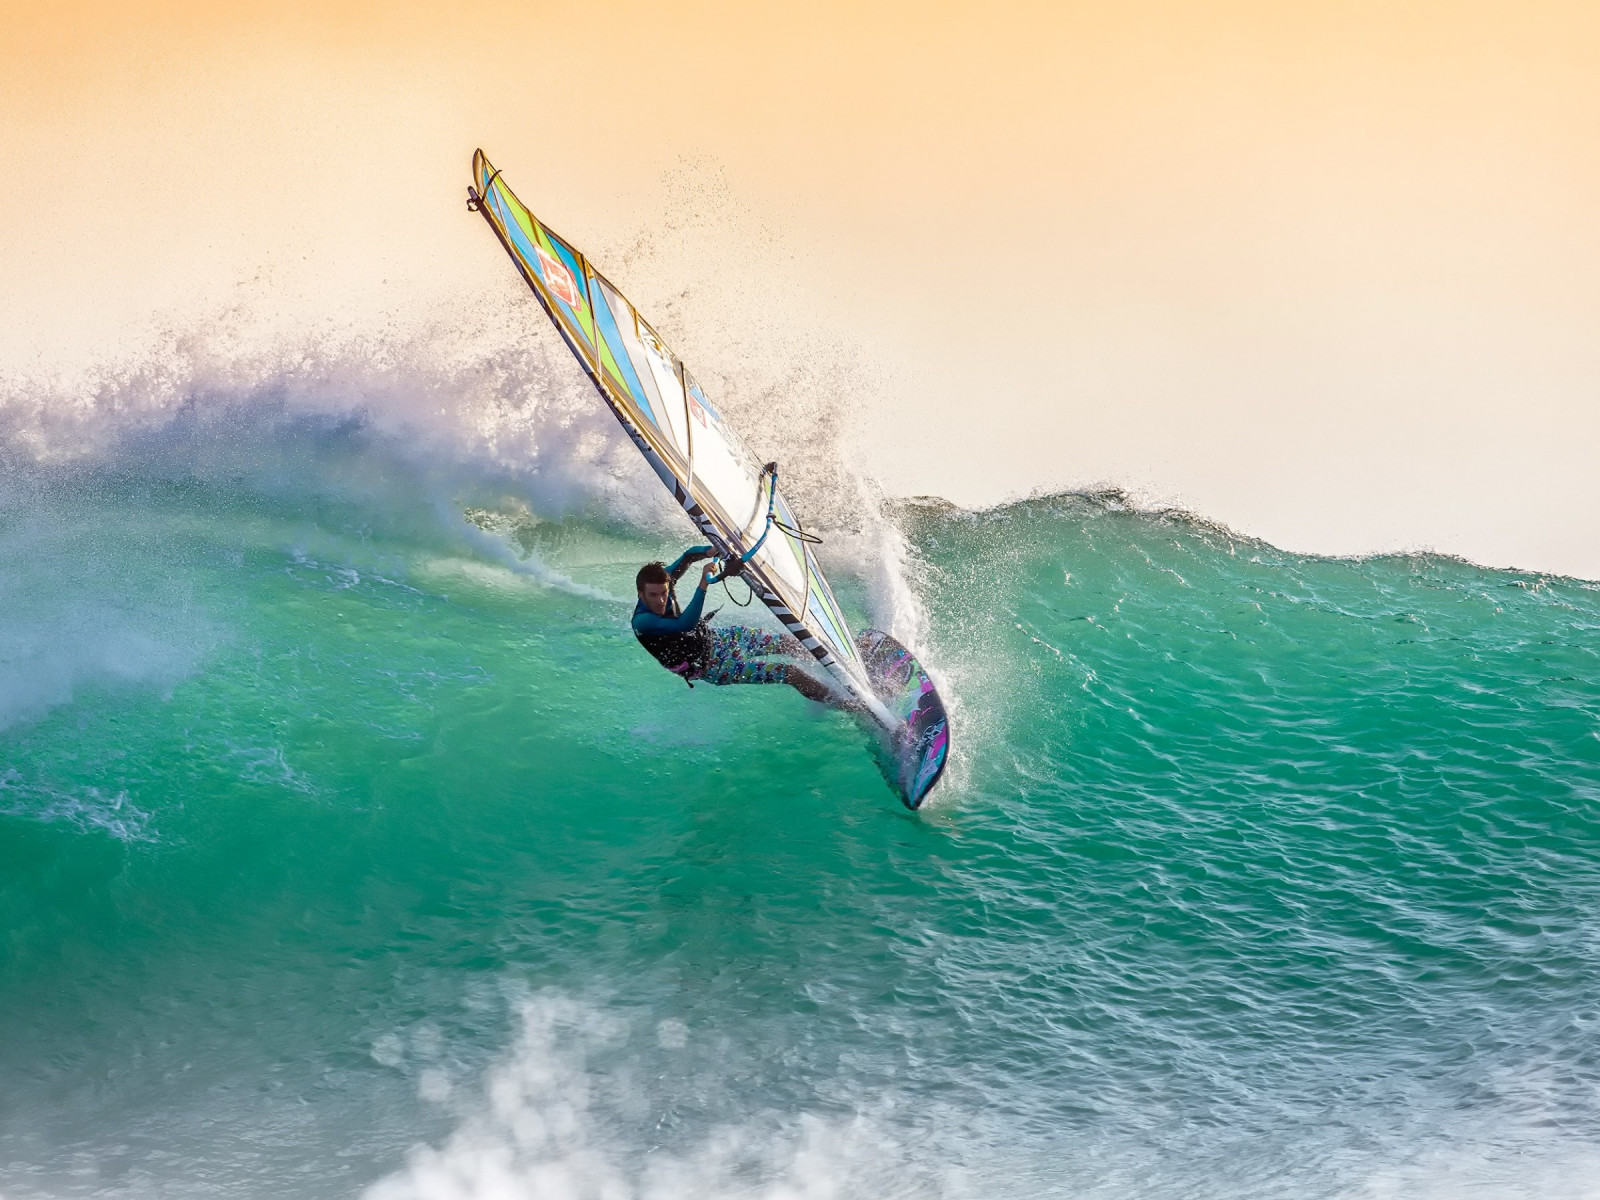 Windsurfing wallpaper 1600x1200